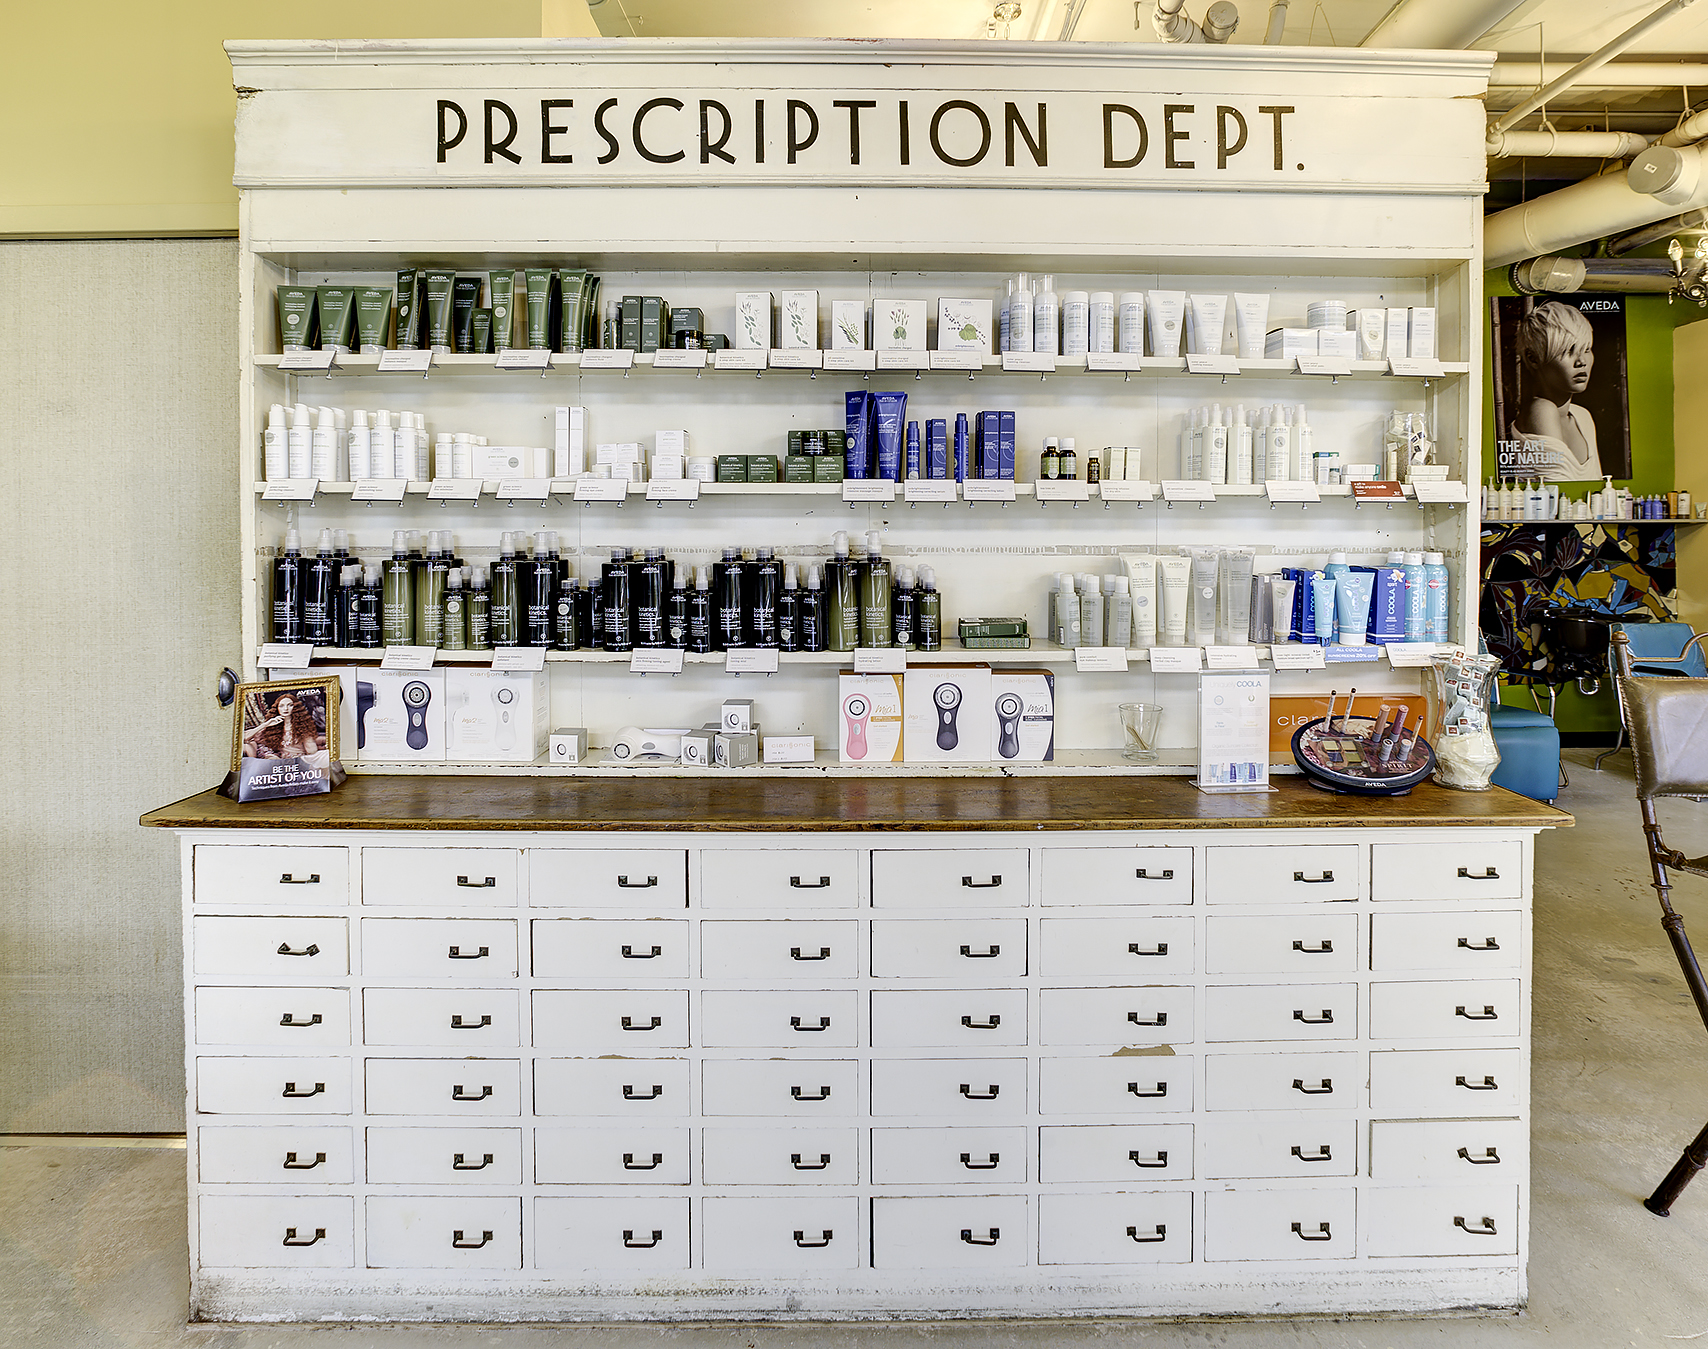 prescription dept.jpg